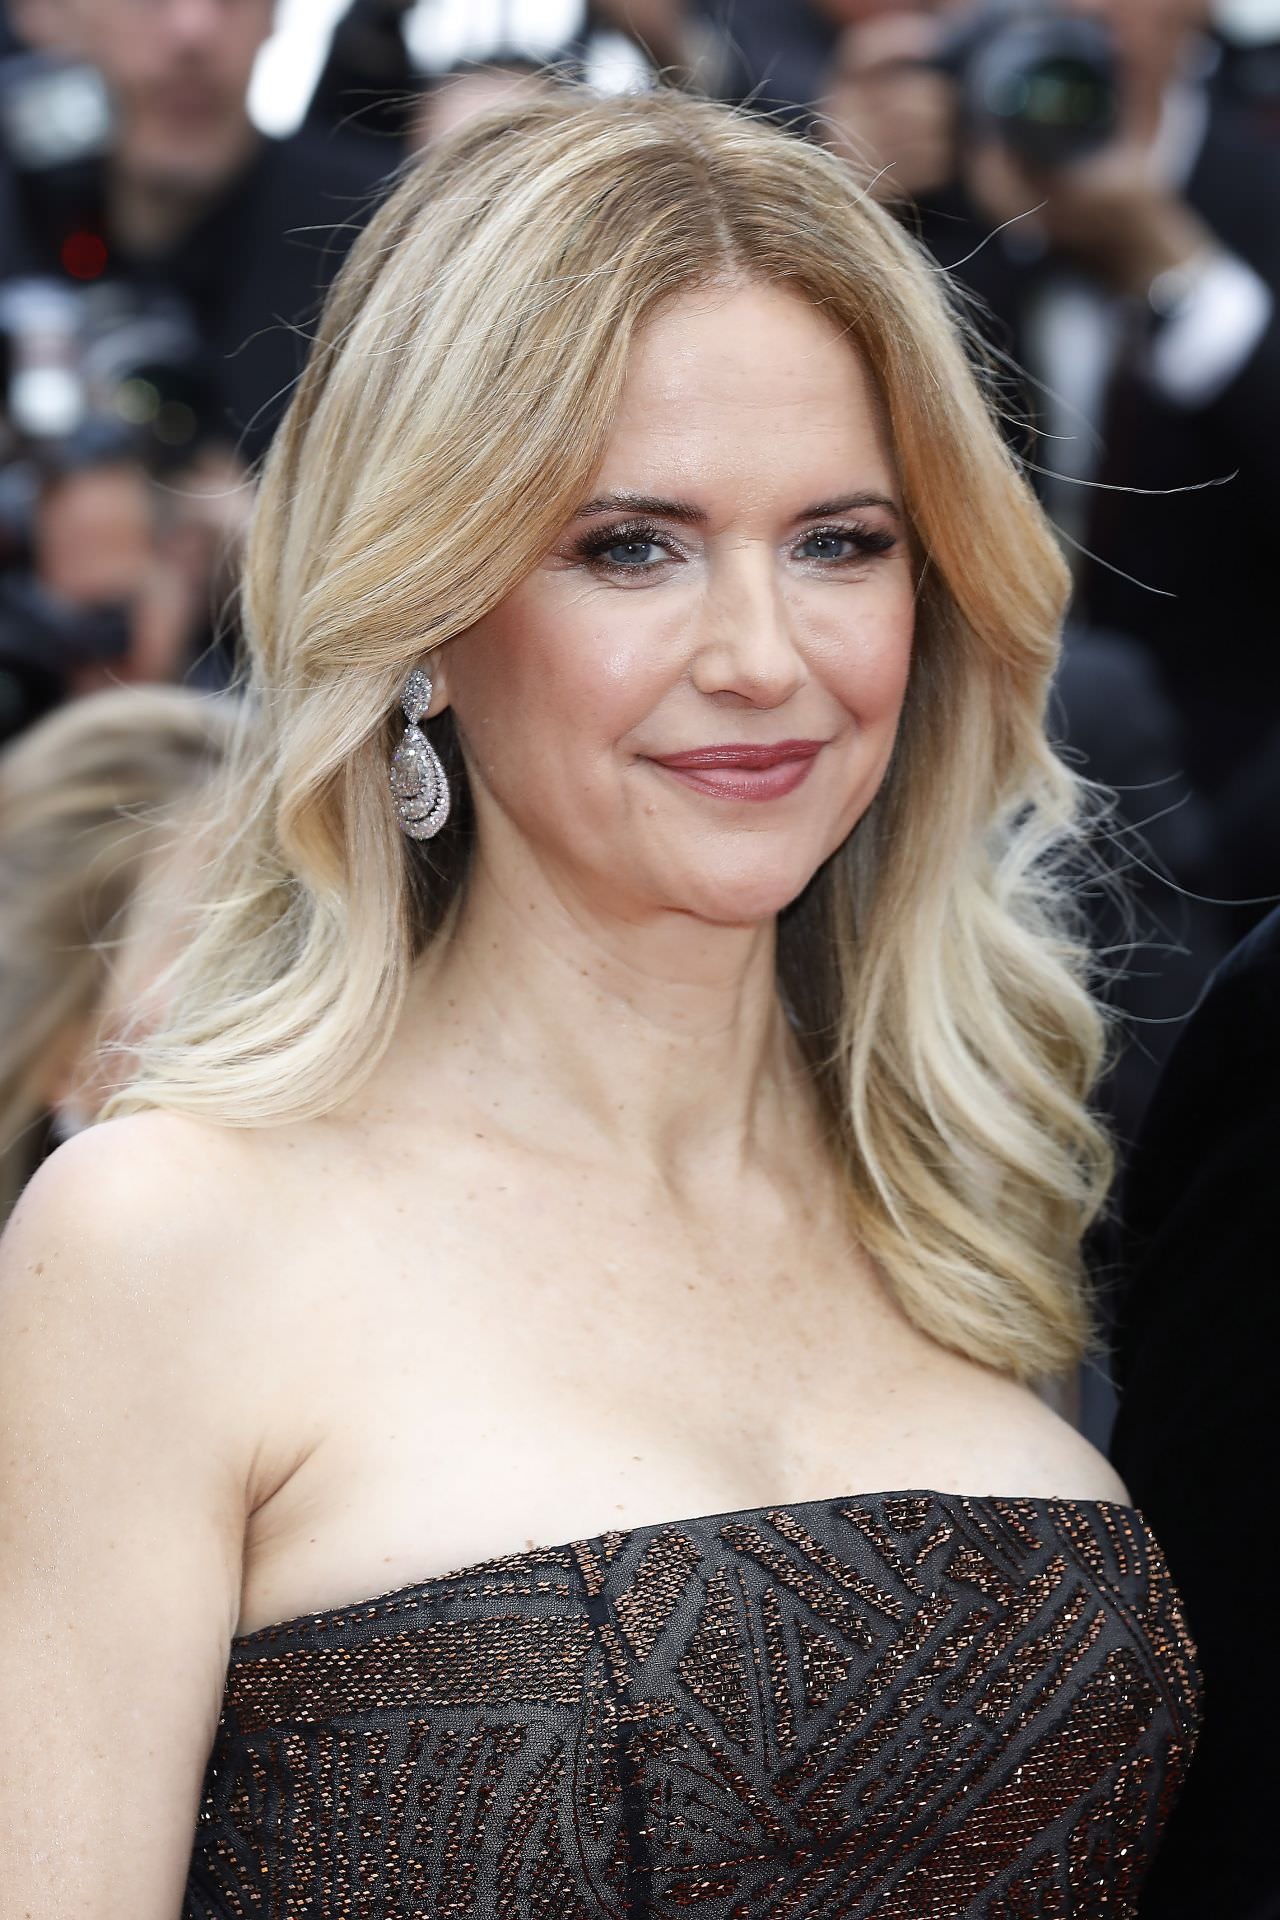 In kelly preston unfug nackt szenen